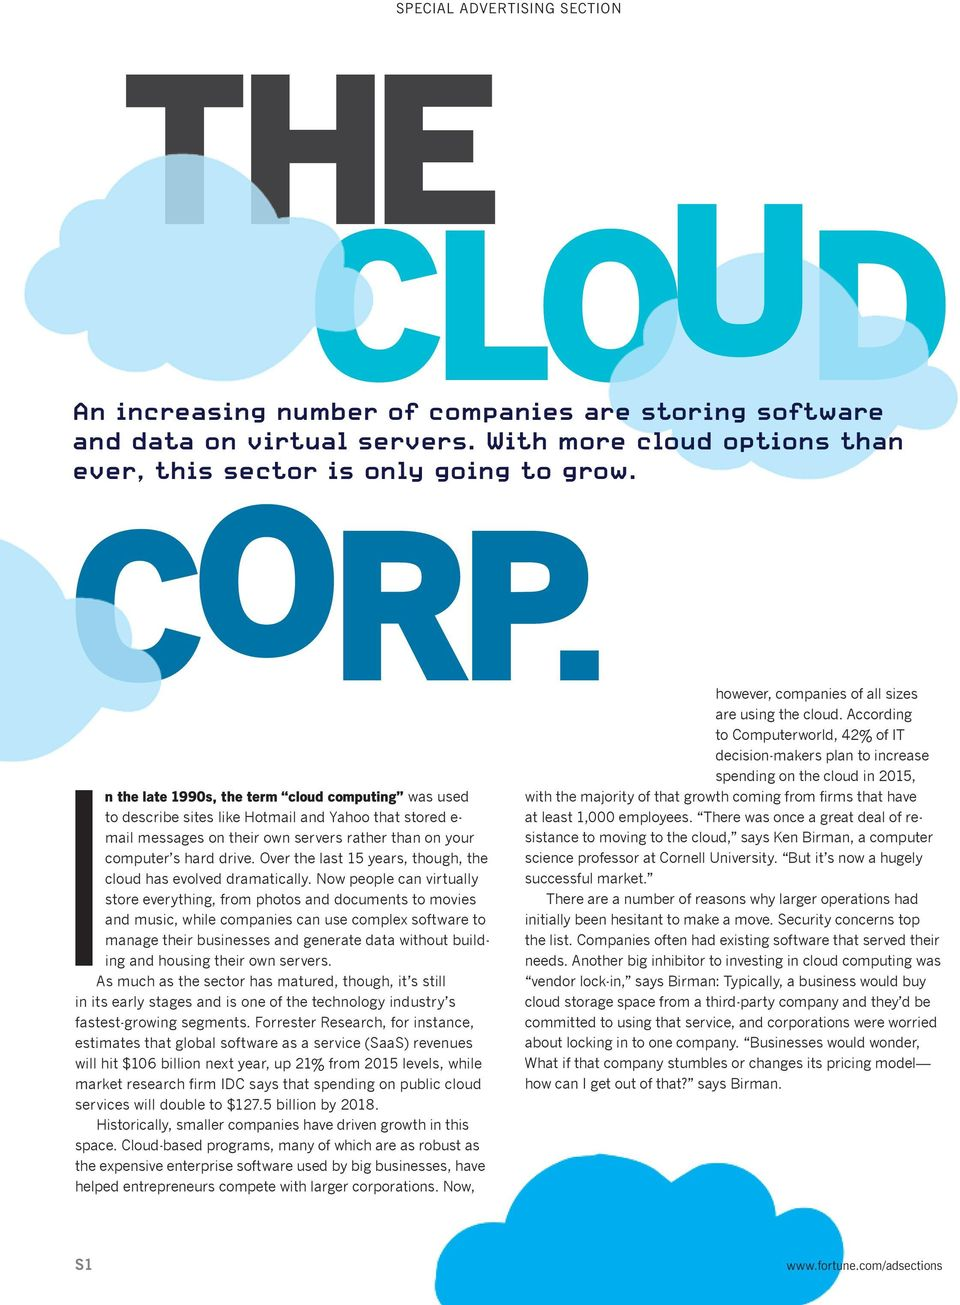 Over the last 15 years, though, the cloud has evolved dramatically.